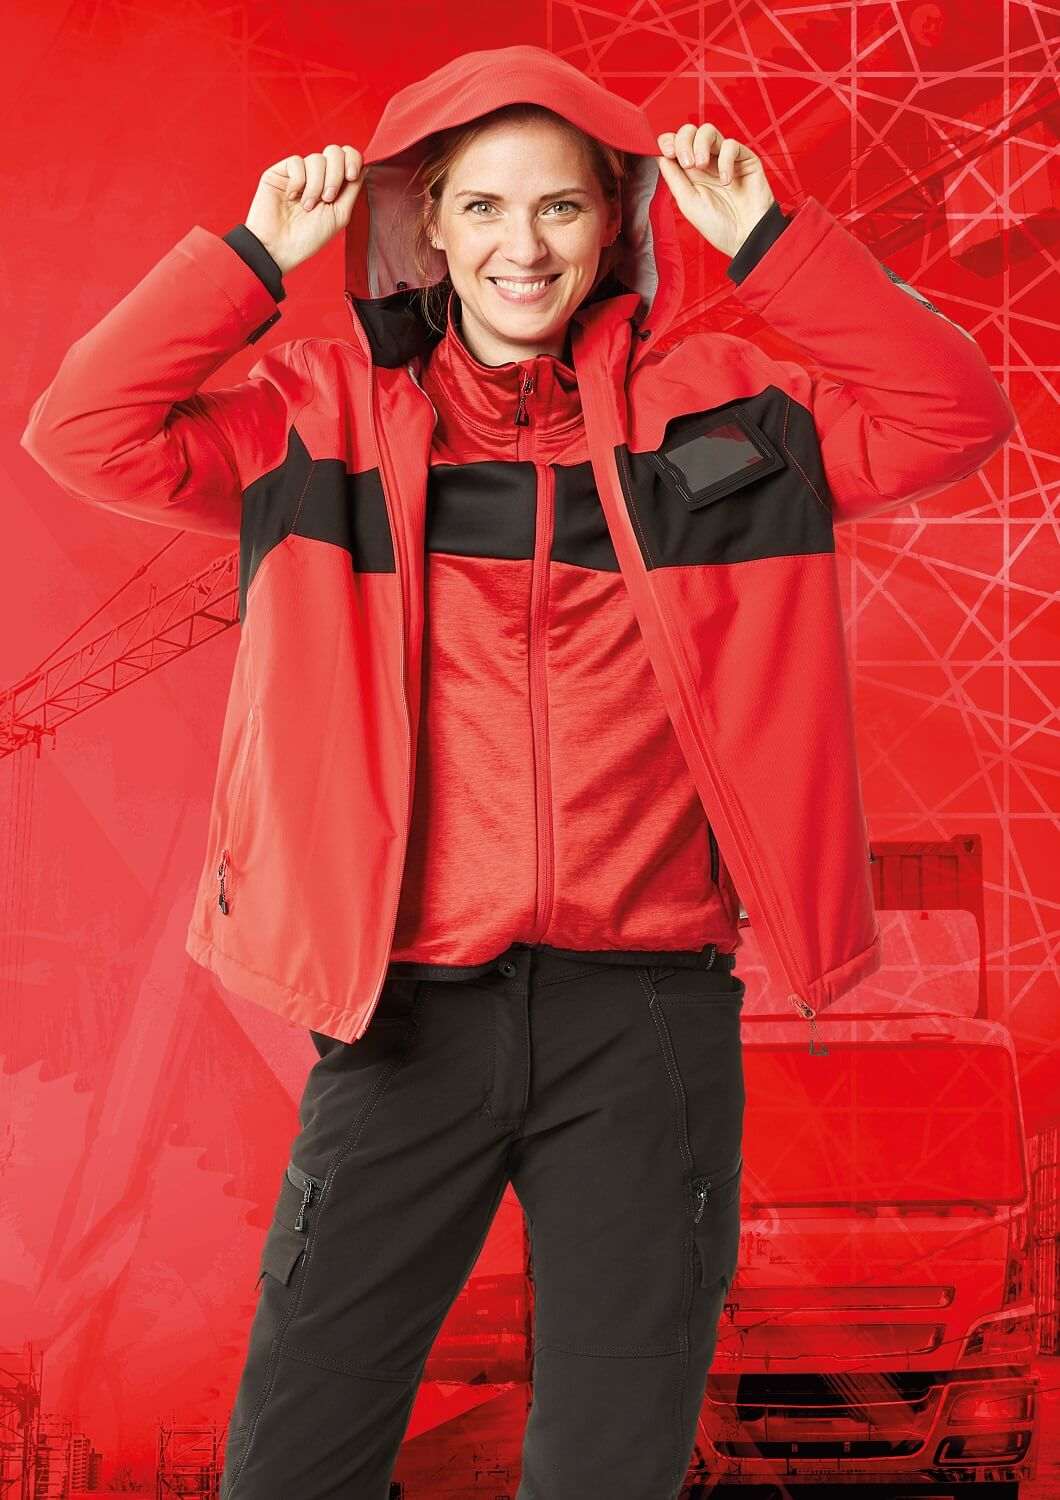 Jacket for women , Jumper & Trousers - MASCOT® ACCELERATE - Red